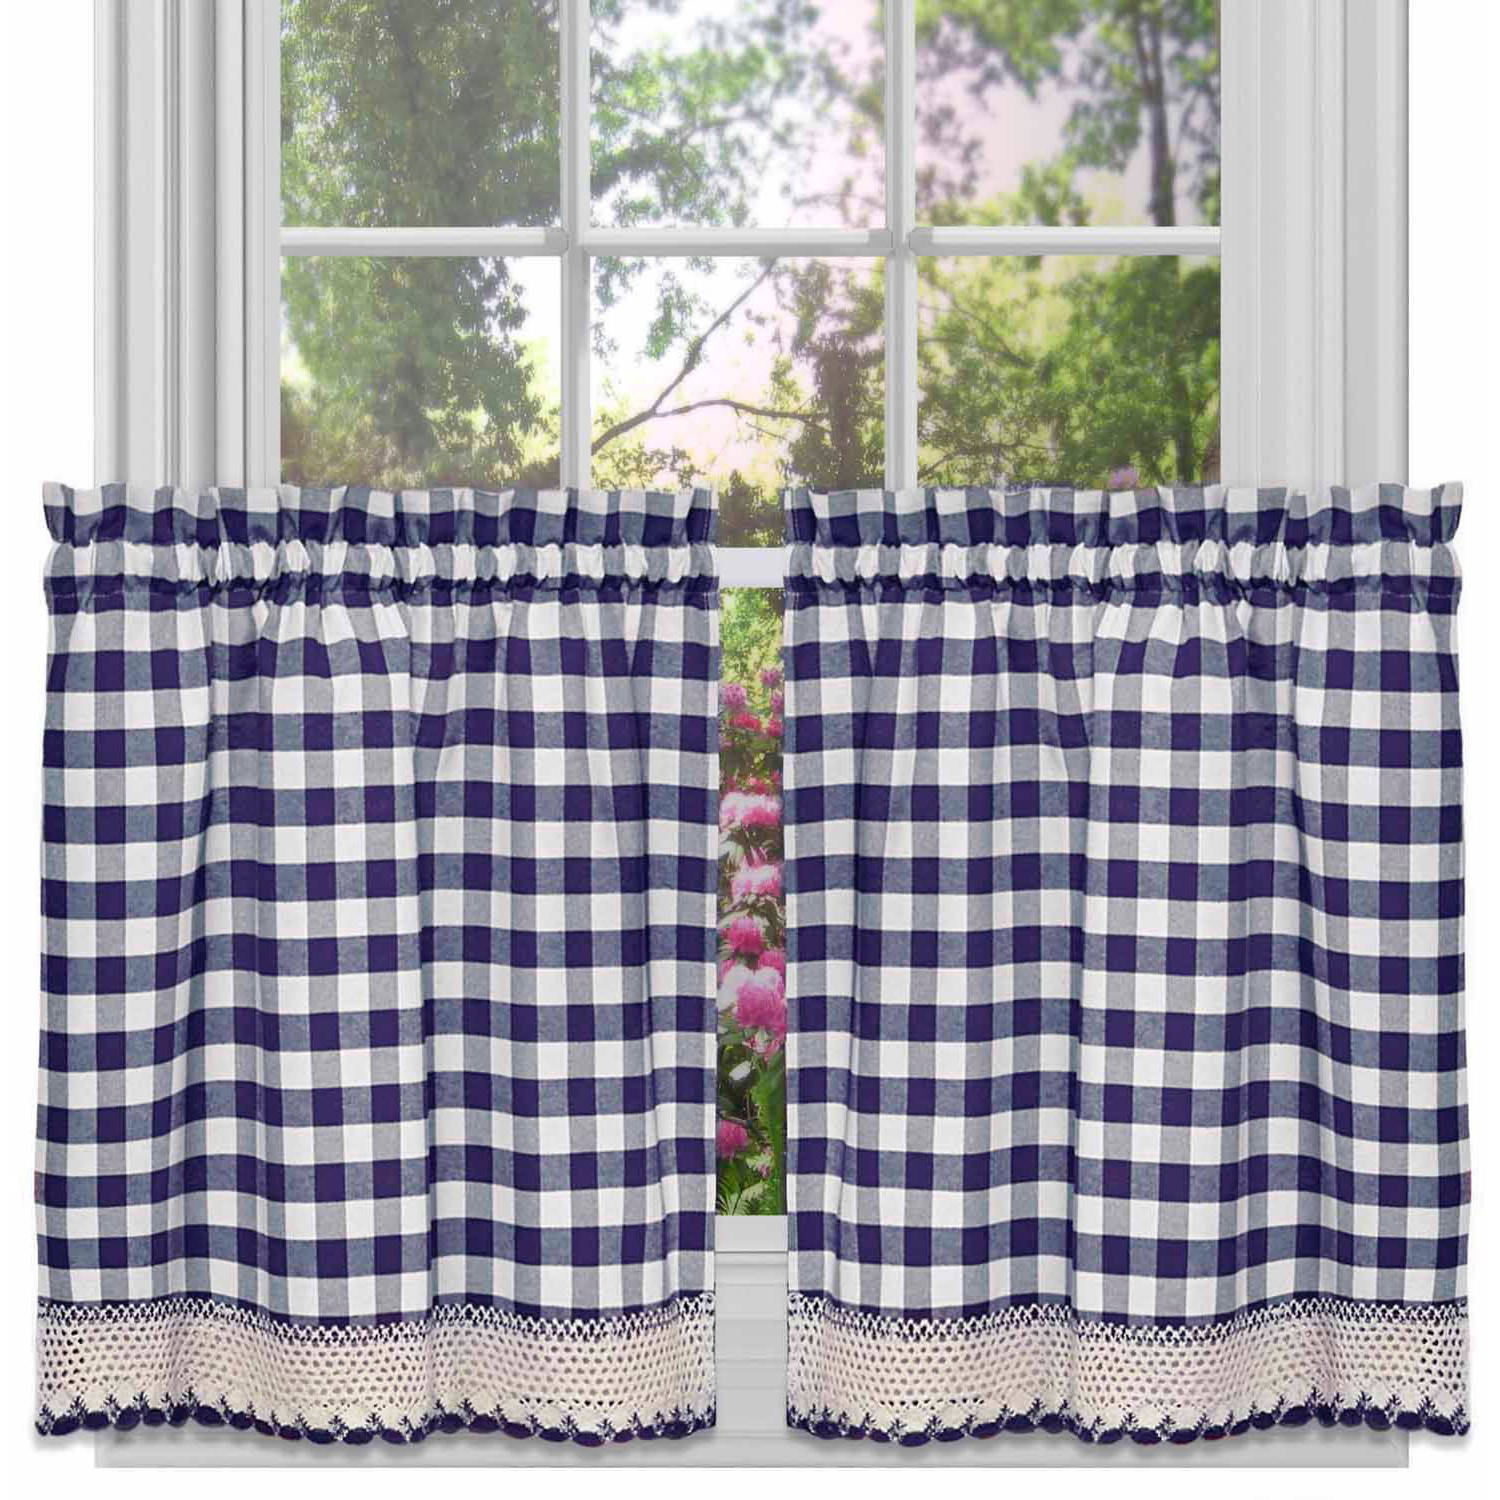 Buffalo Check Kitchen Curtains, Set of 2 Available In Multiple Sizes And Colors